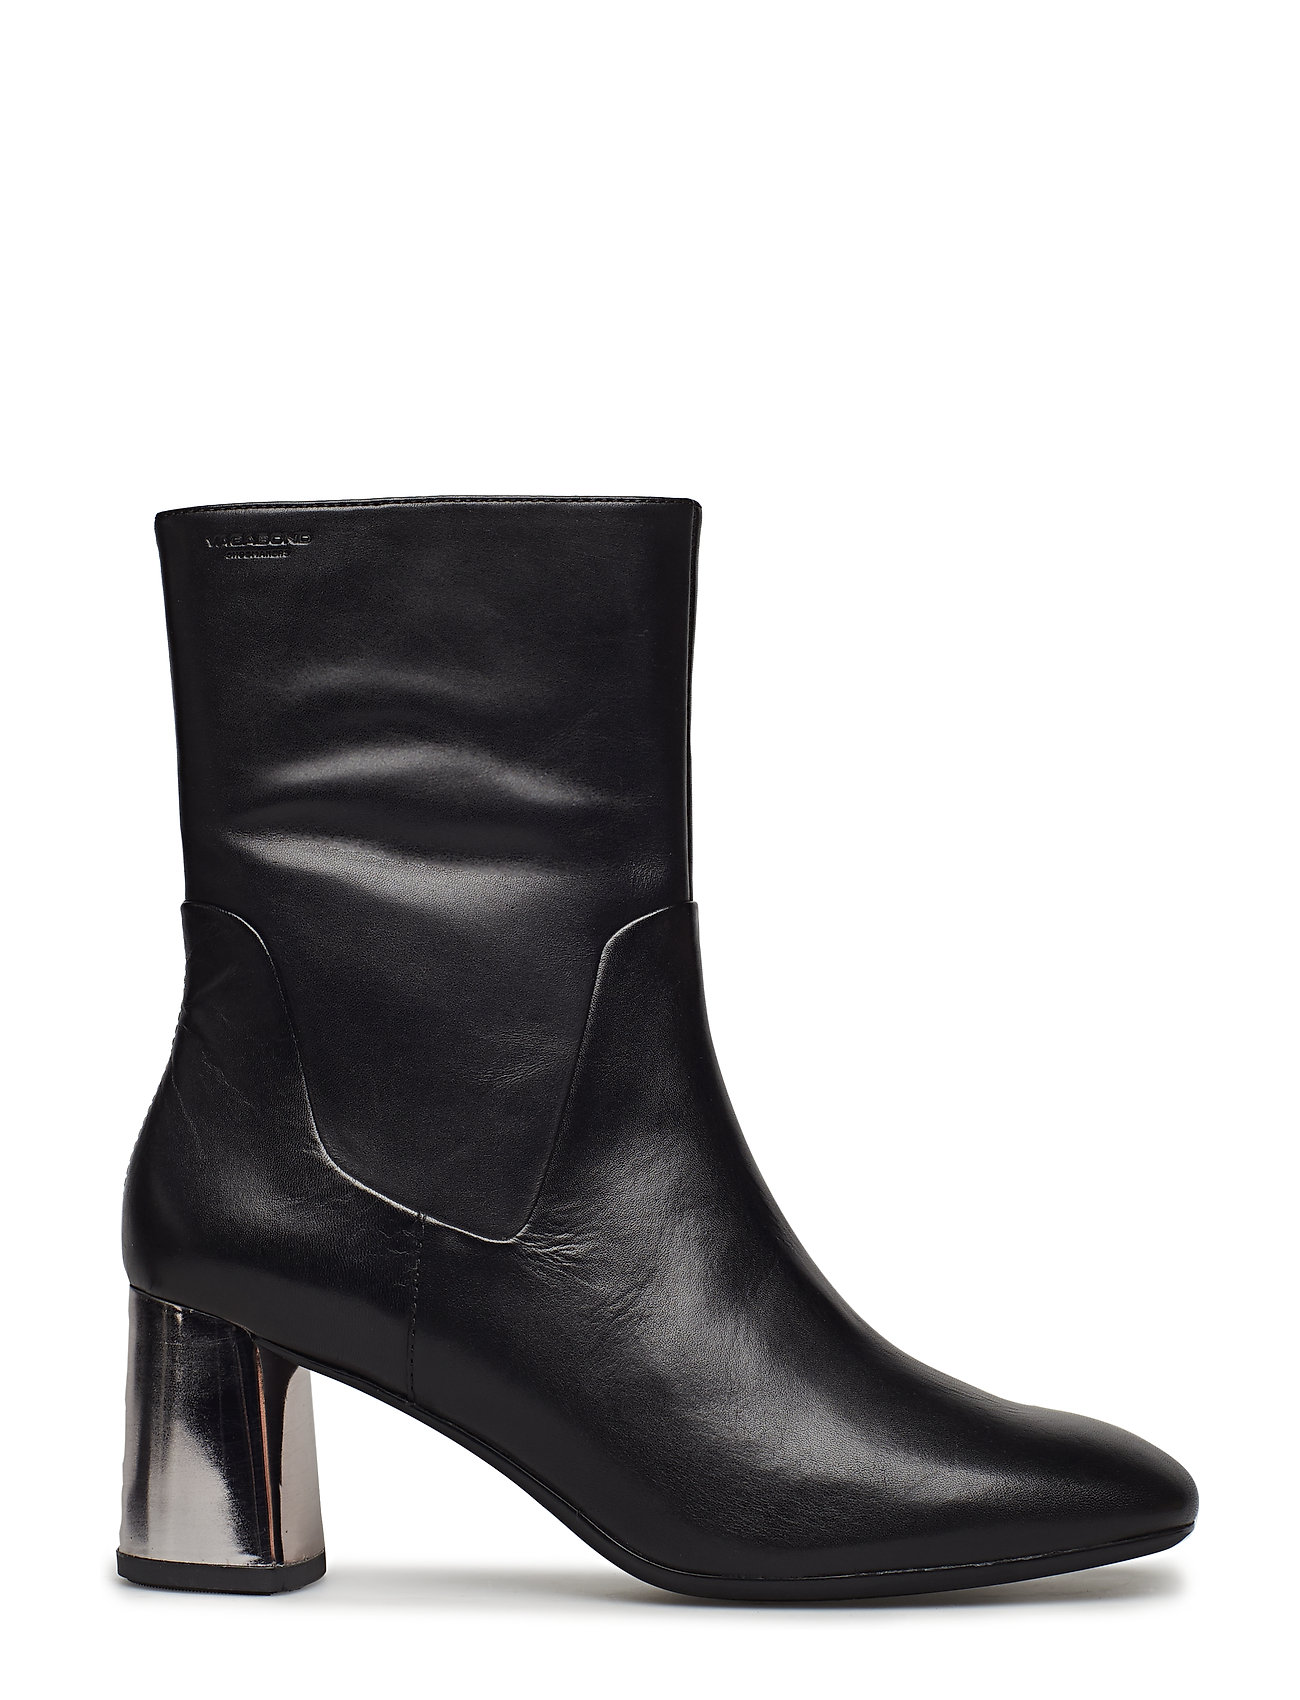 Olivia Shoes Boots Ankle Boots Ankle Boots With Heel Rød VAGABOND